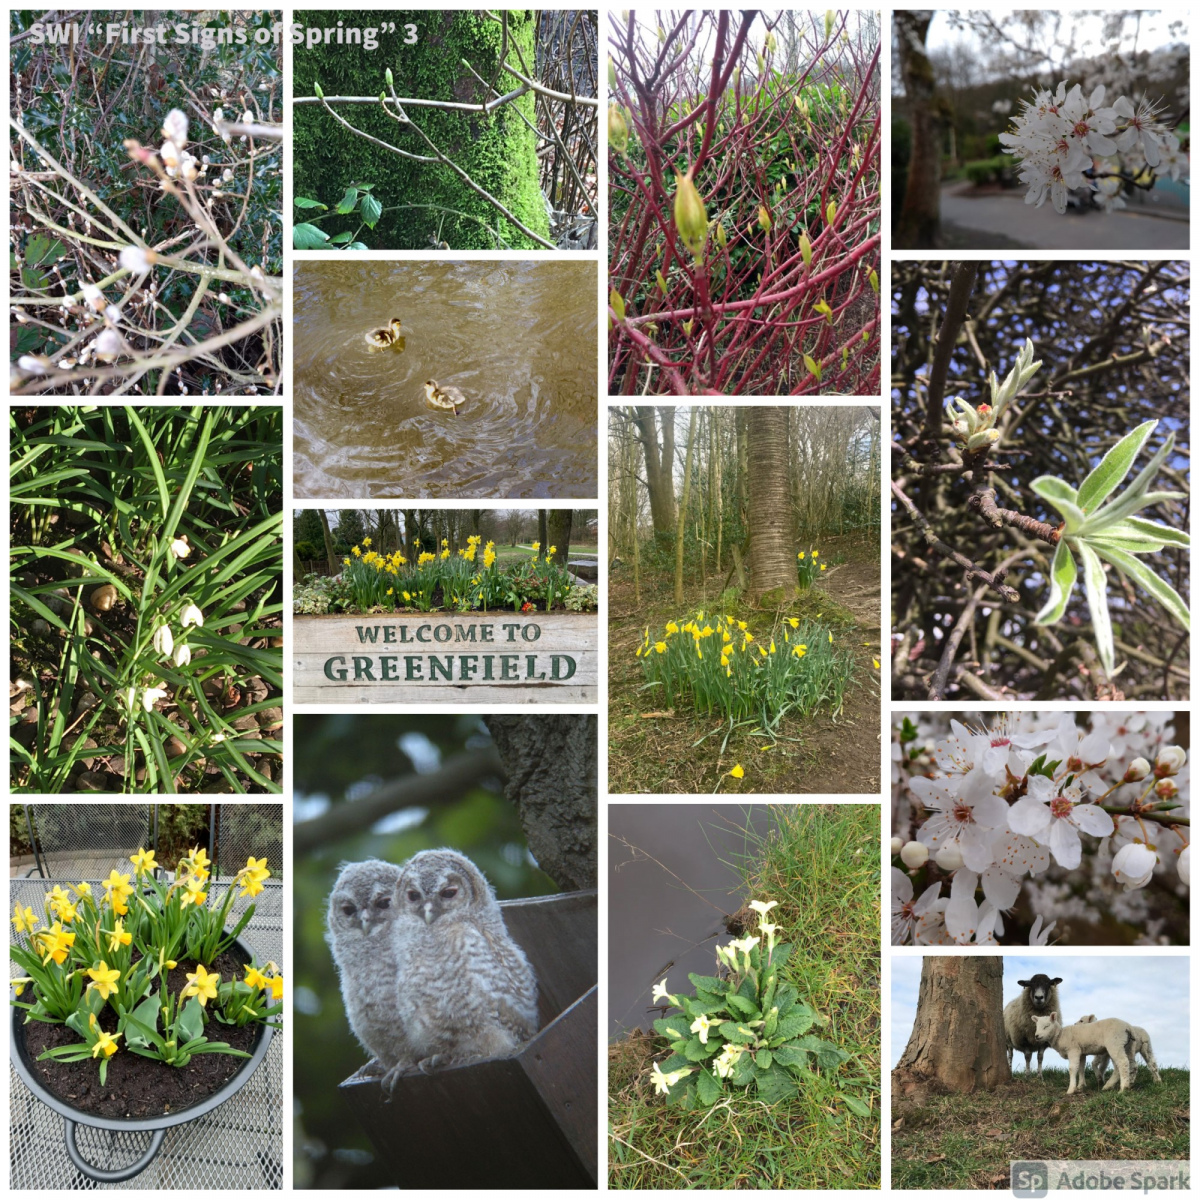 SWI-First-Signs-of-Spring-part3